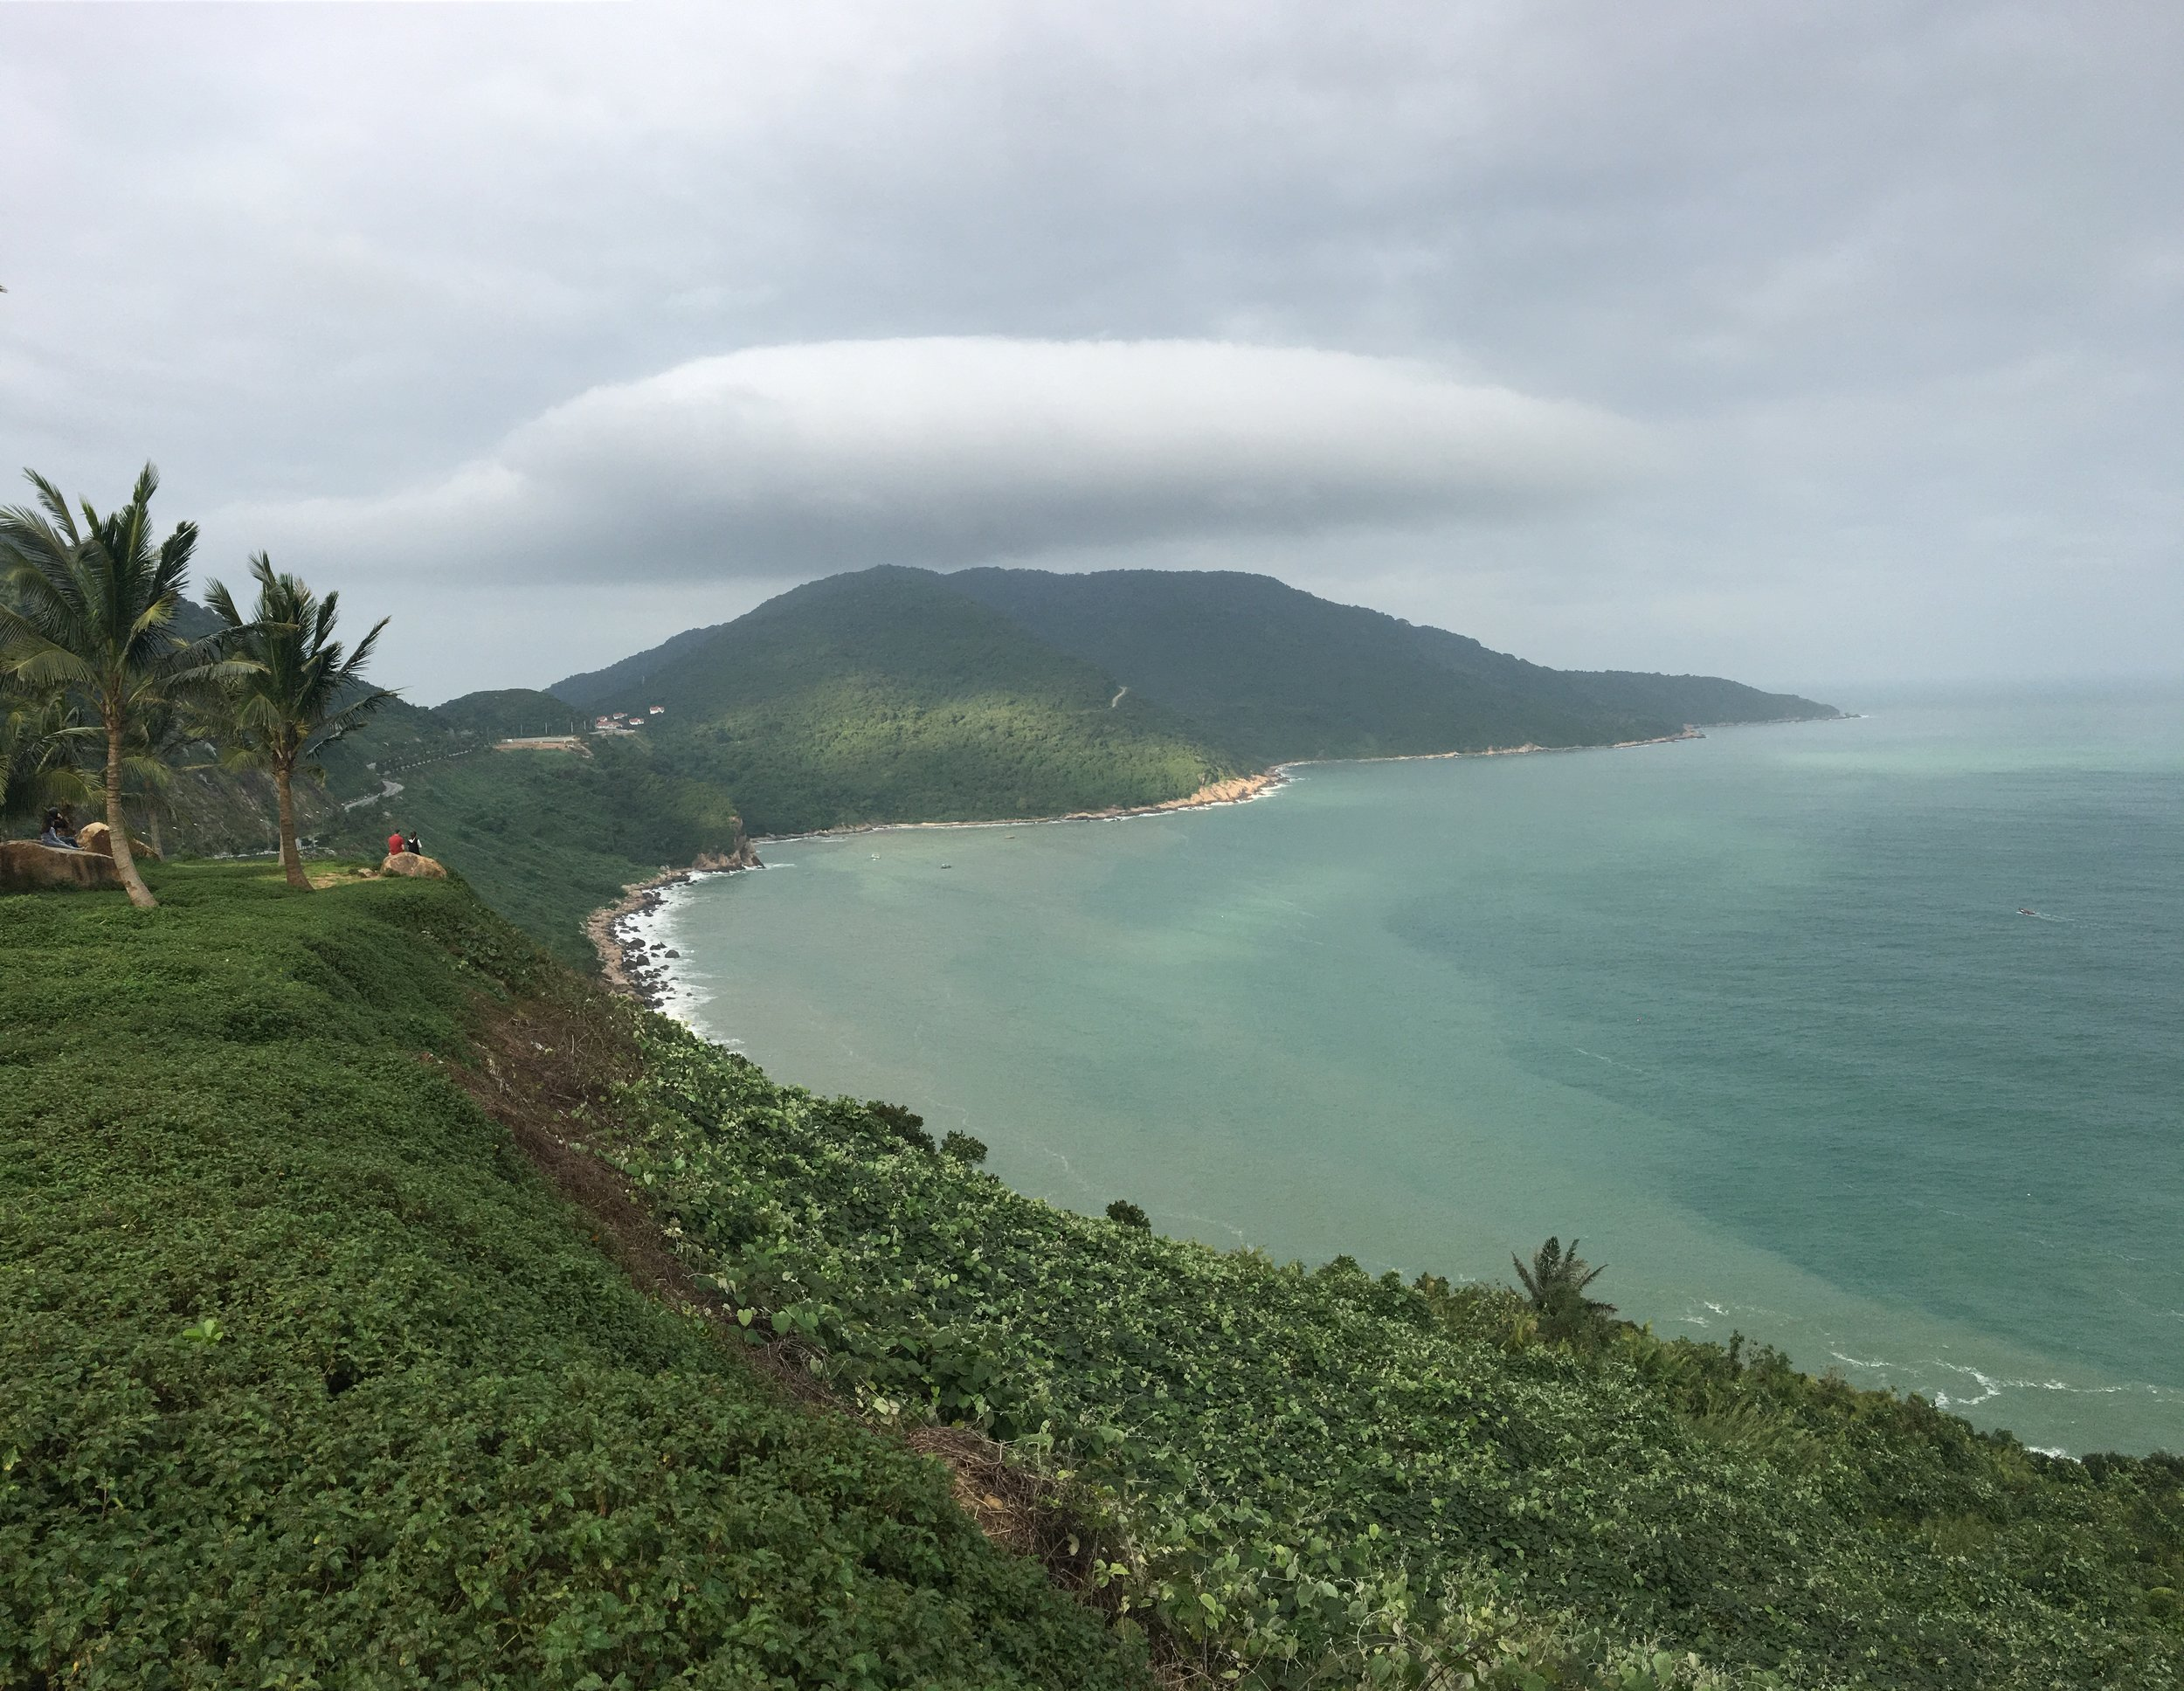 The beautiful coast of Da Nang, Vietnam